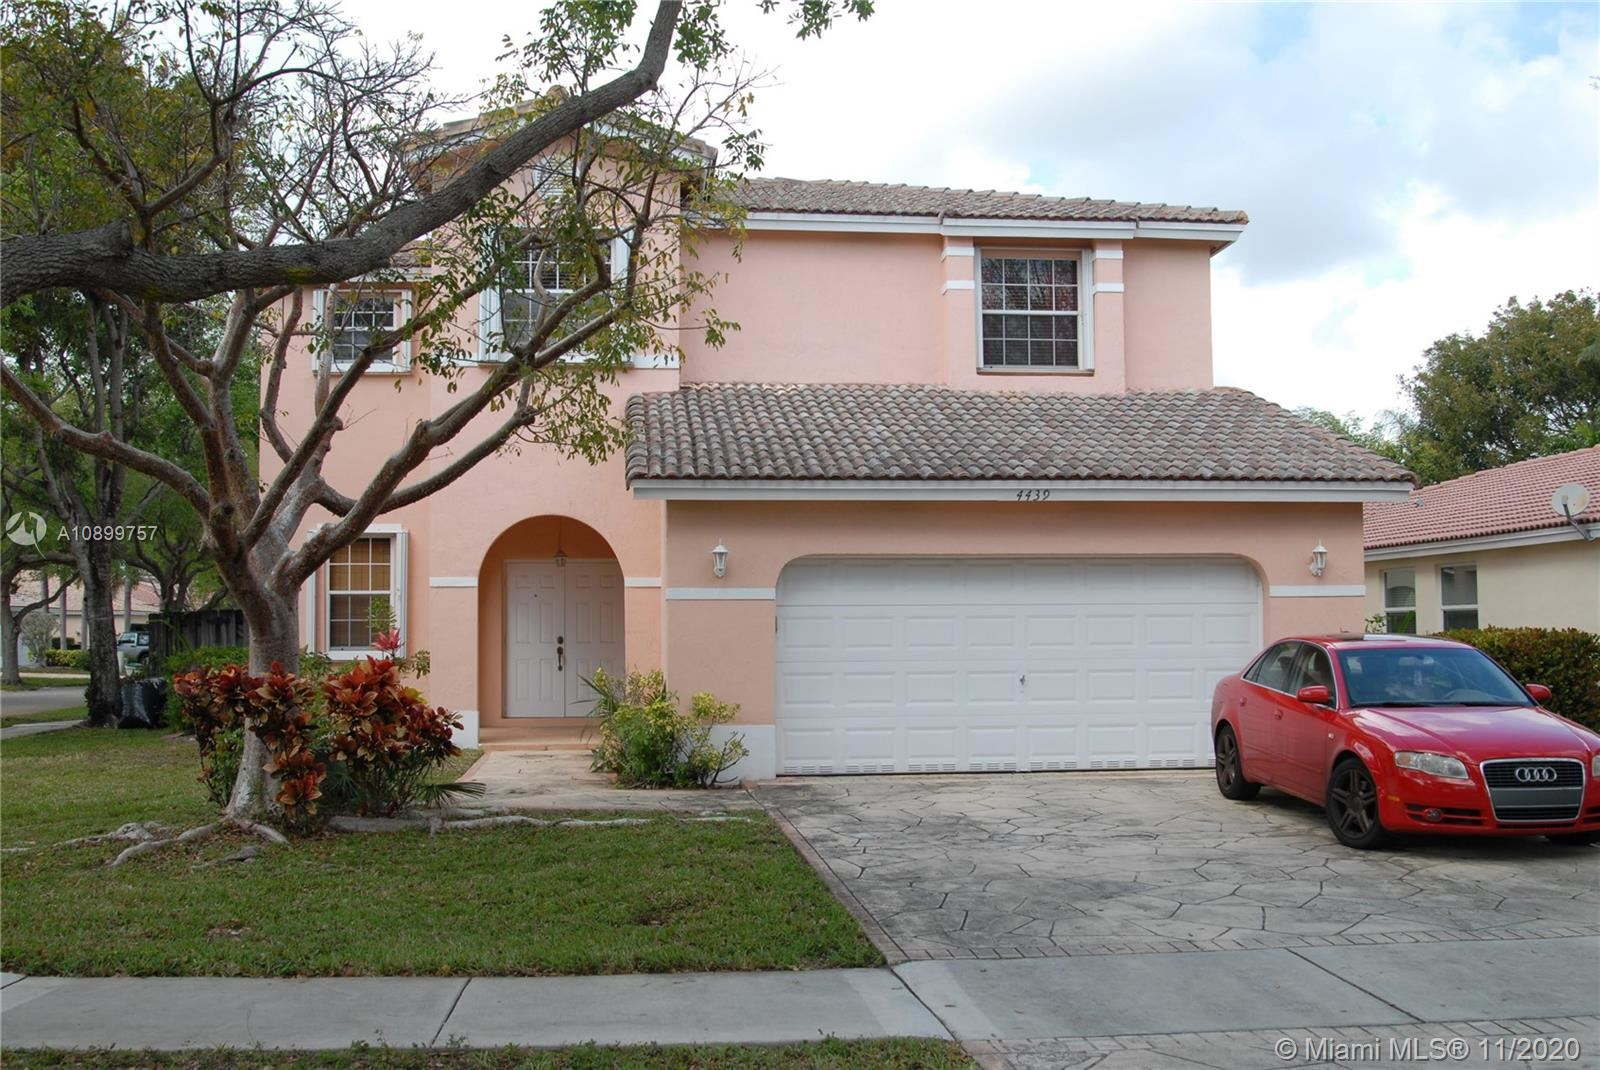 4439 NW 43rd St, Coconut Creek, FL 33073 - #: A10899757